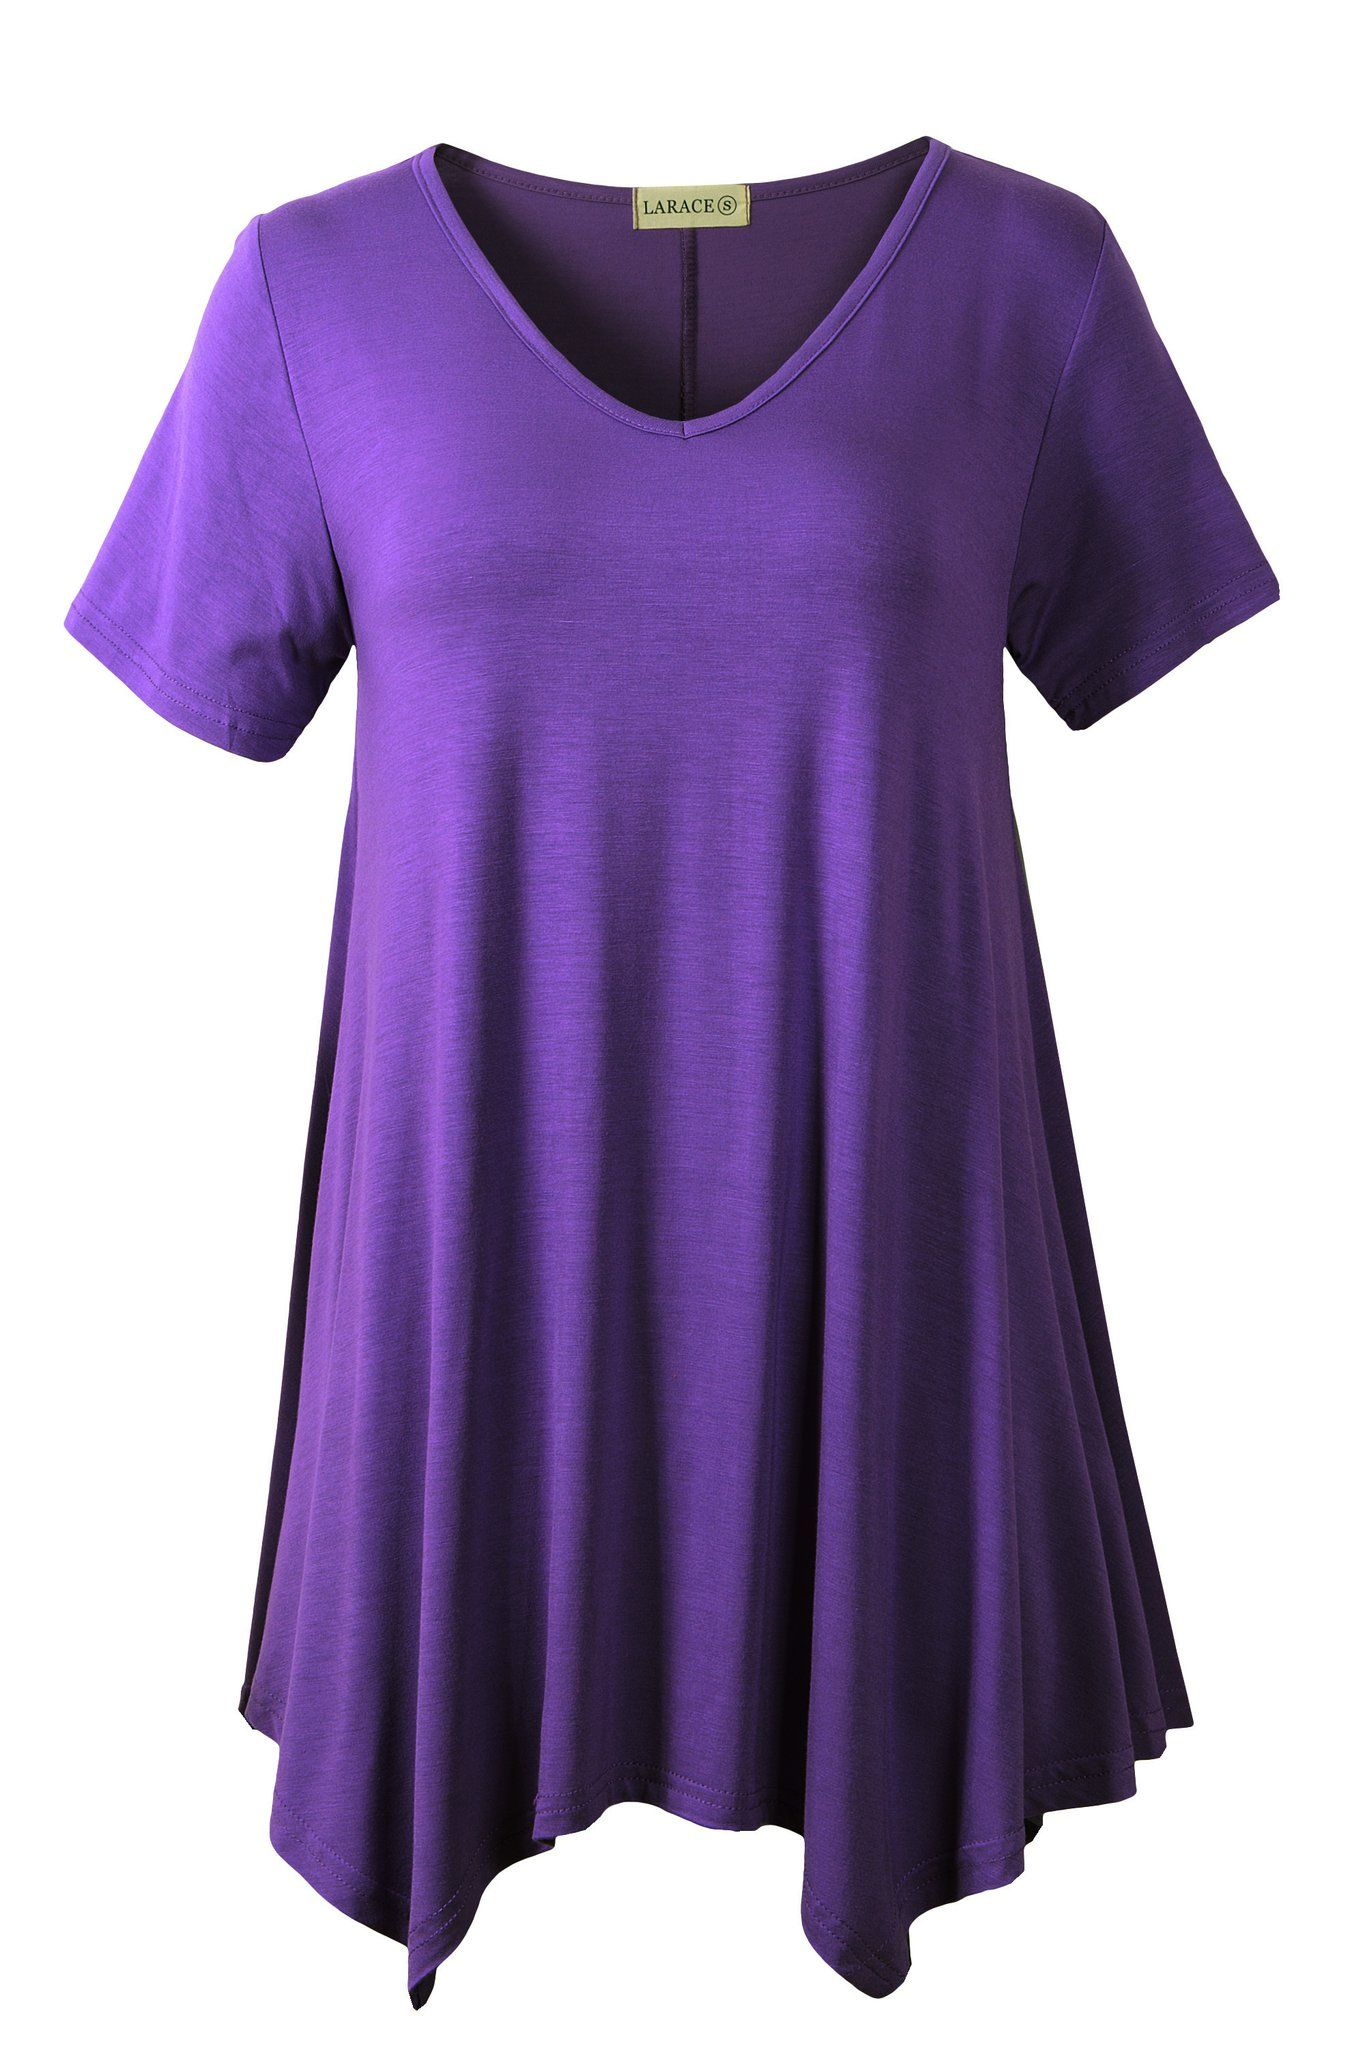 Womens Plain V Neck Plus Size Short Sleeve Casual Flared Swing Blouse Tunic Top